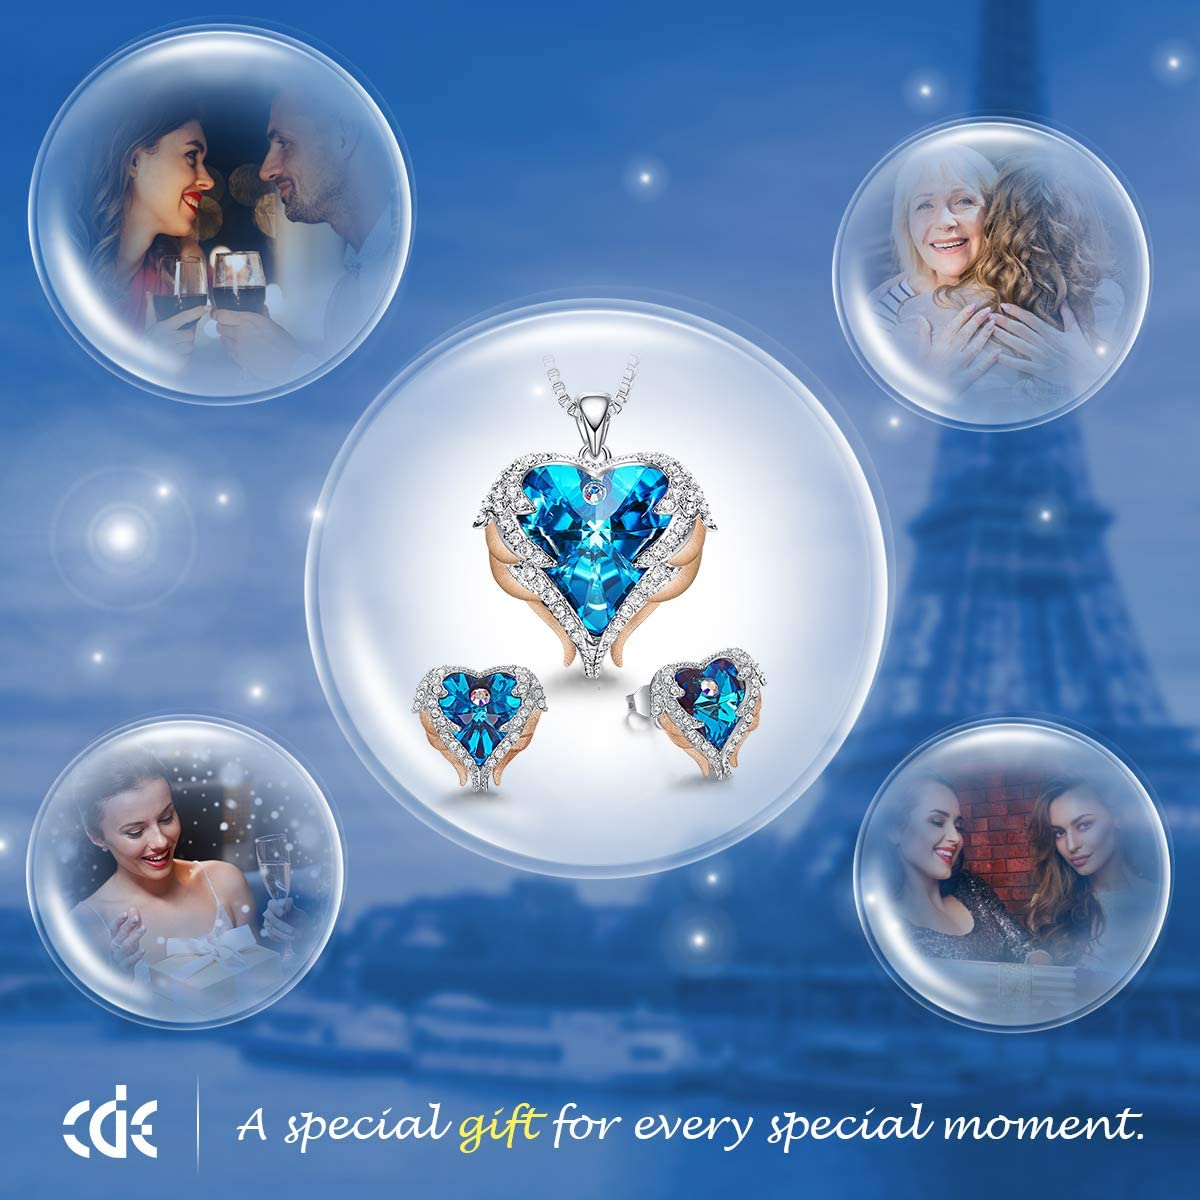 CDE Jewellery Sets for Women Angel Wings Crystal Heart Pendant Necklace and Earrings Sets Jewellery Birthday Gifts for Her/Mum/Wife/Bestfriend Rose Gold Blue